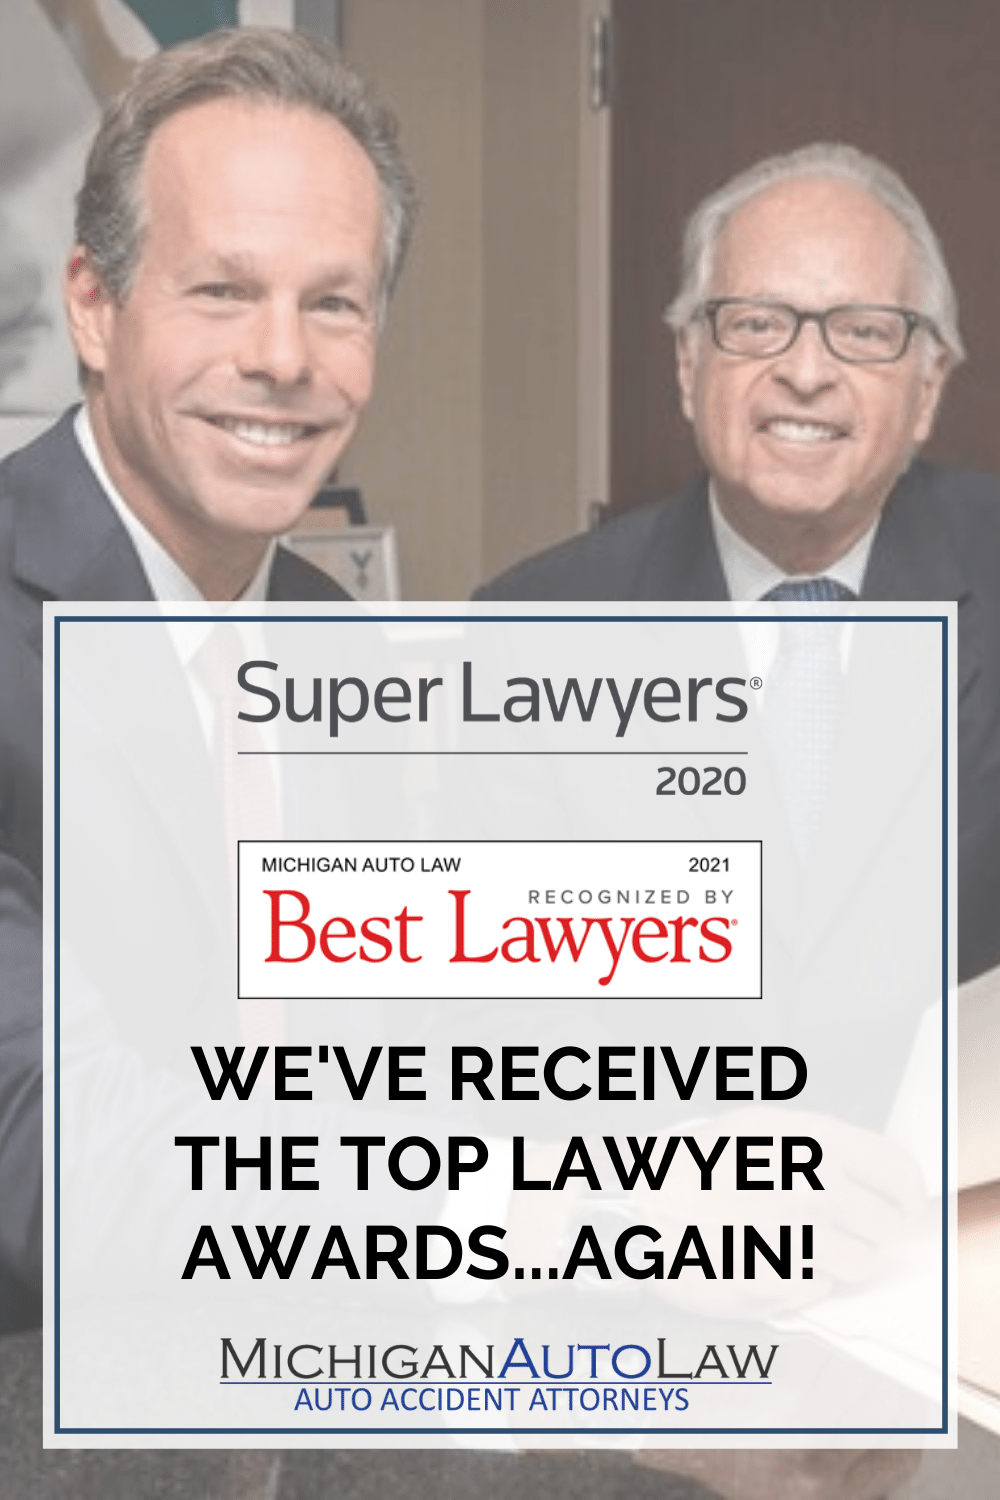 Michigan Auto Law attorneys voted Super Lawyers 2020 and Best Lawyers in America 2021